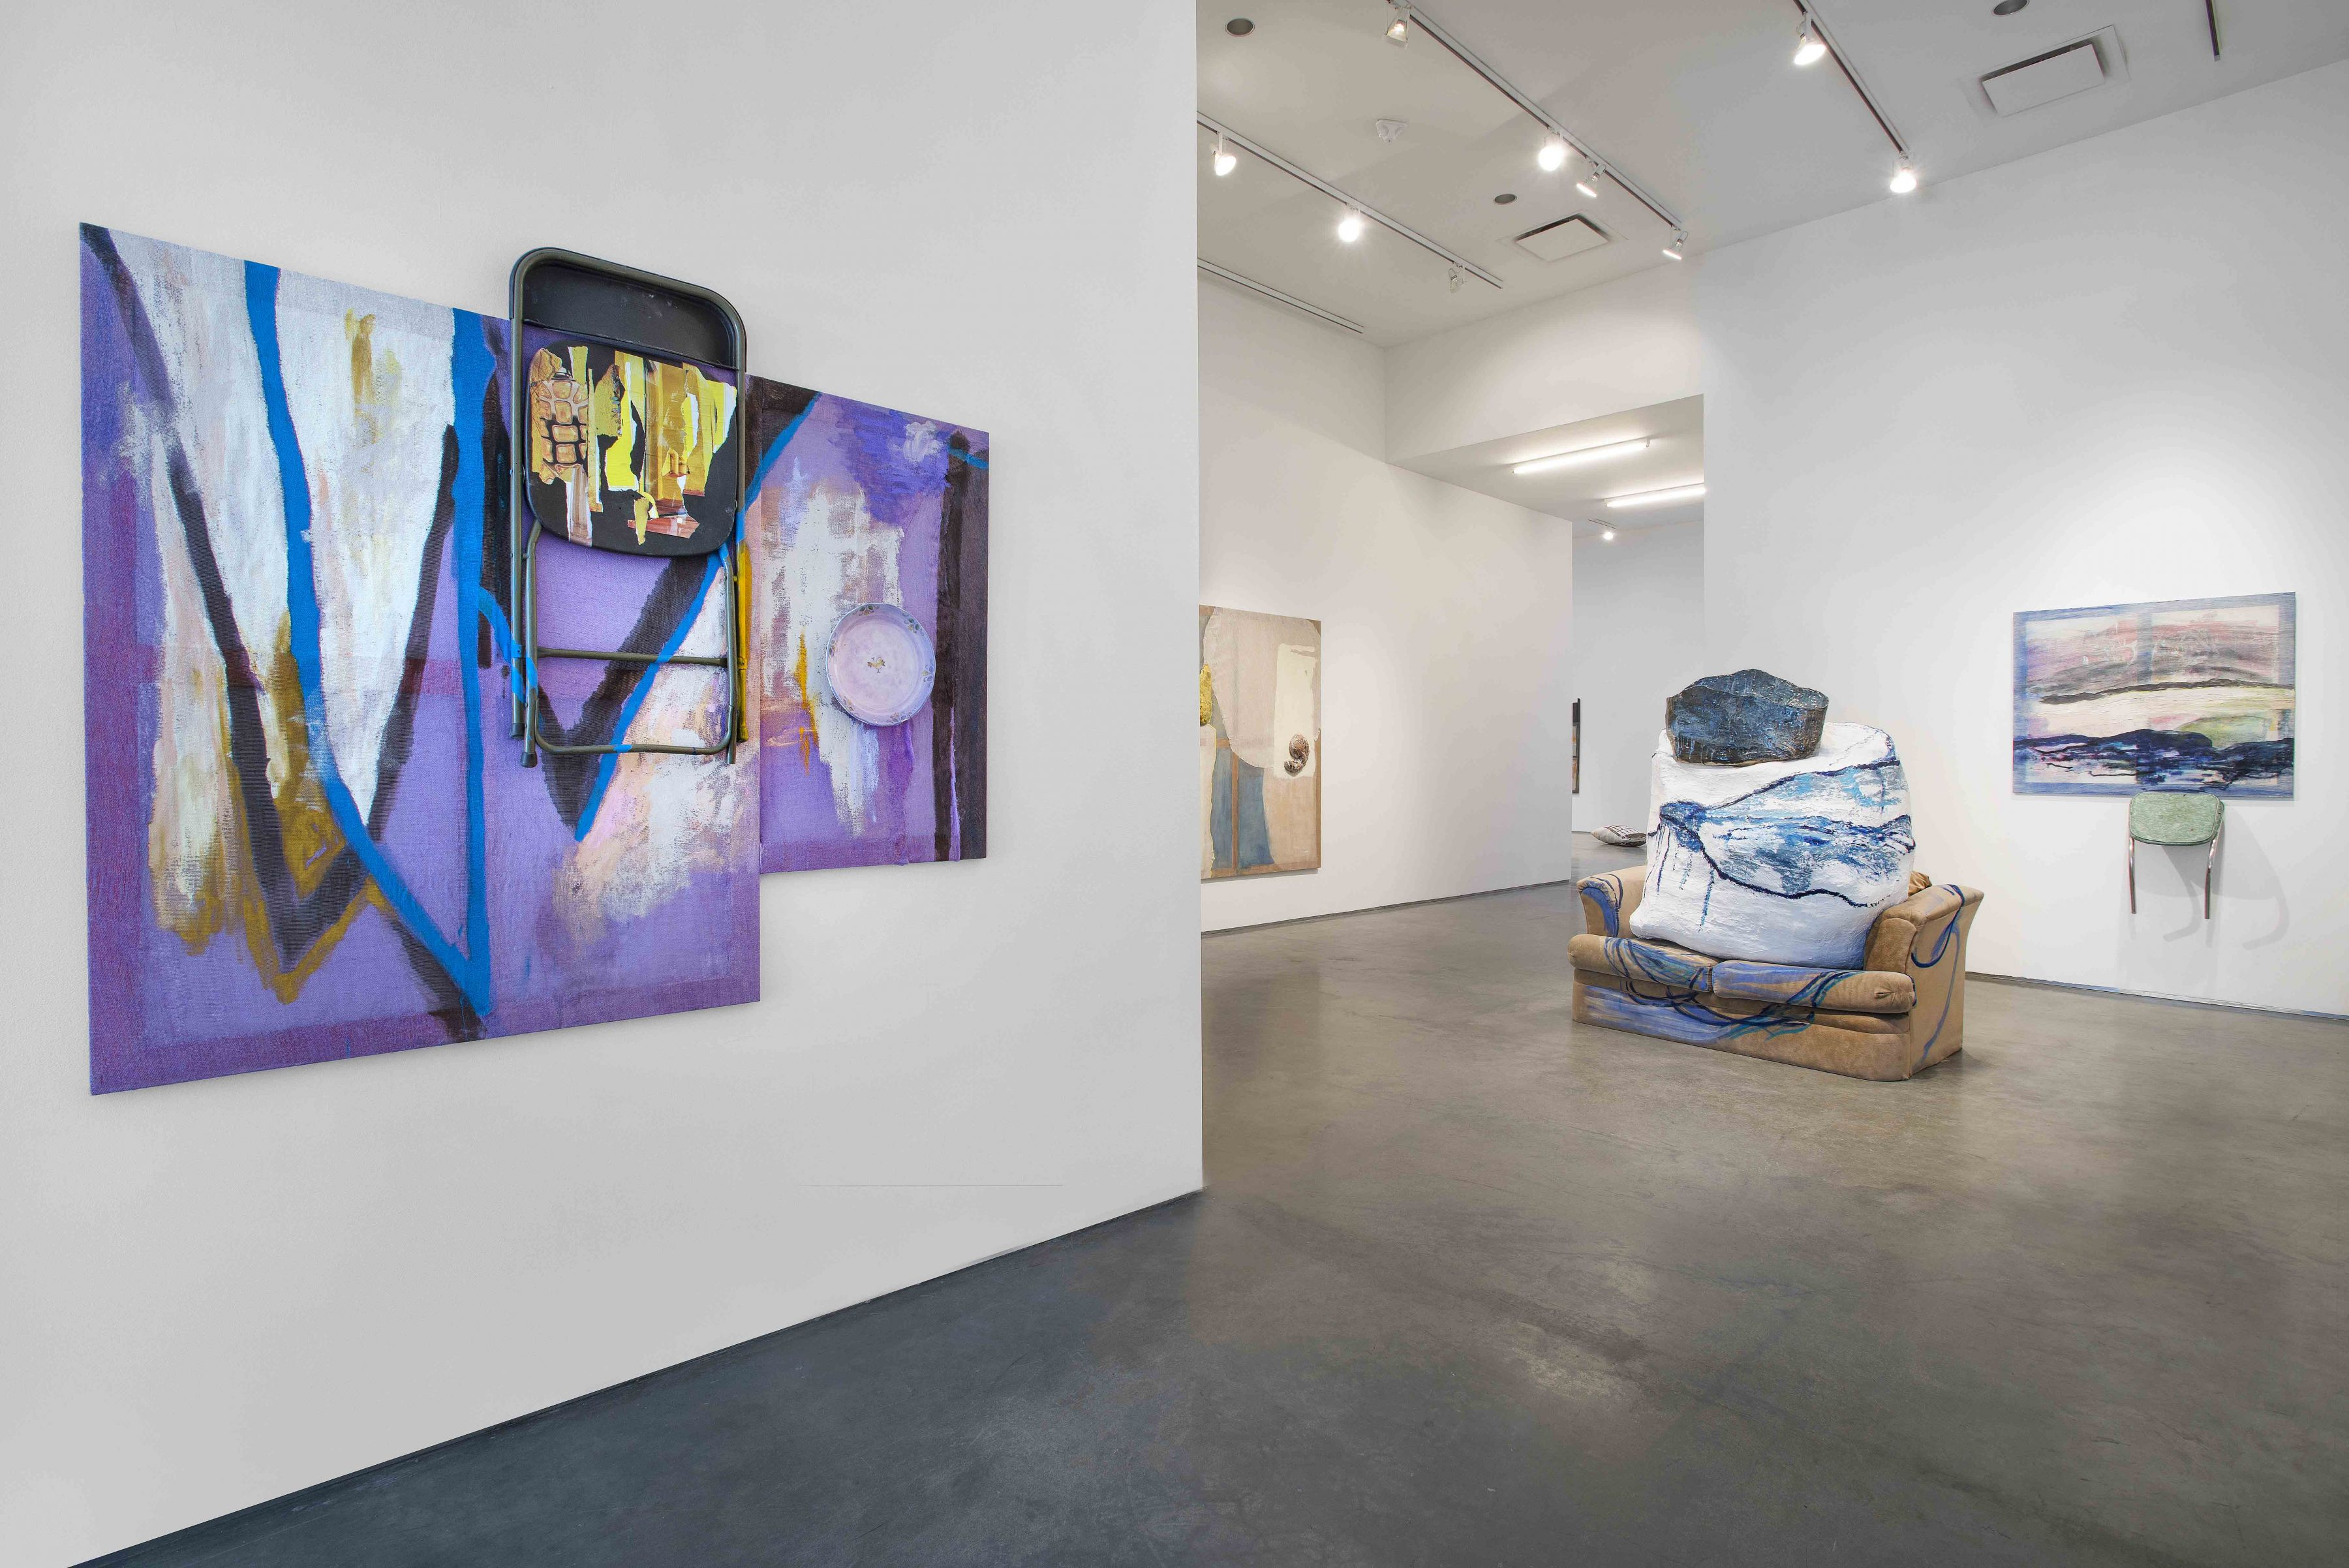 contemporary art gallery in nyc exhibiting the artwork of jessica jackson hutchins